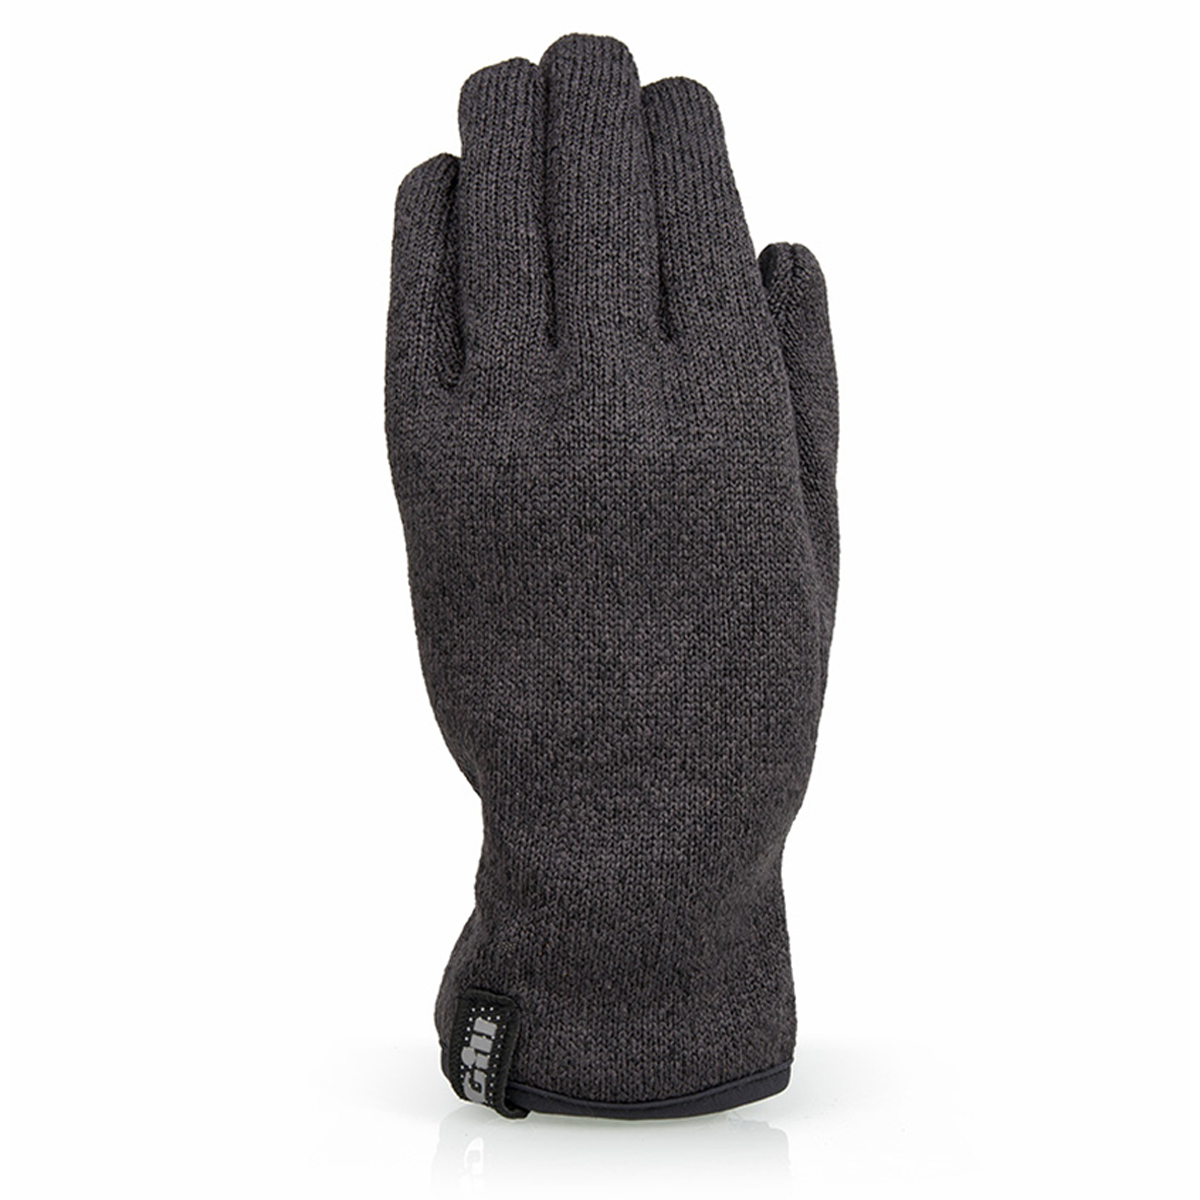 GILL KNIT FLEECE GLOVES (1495)